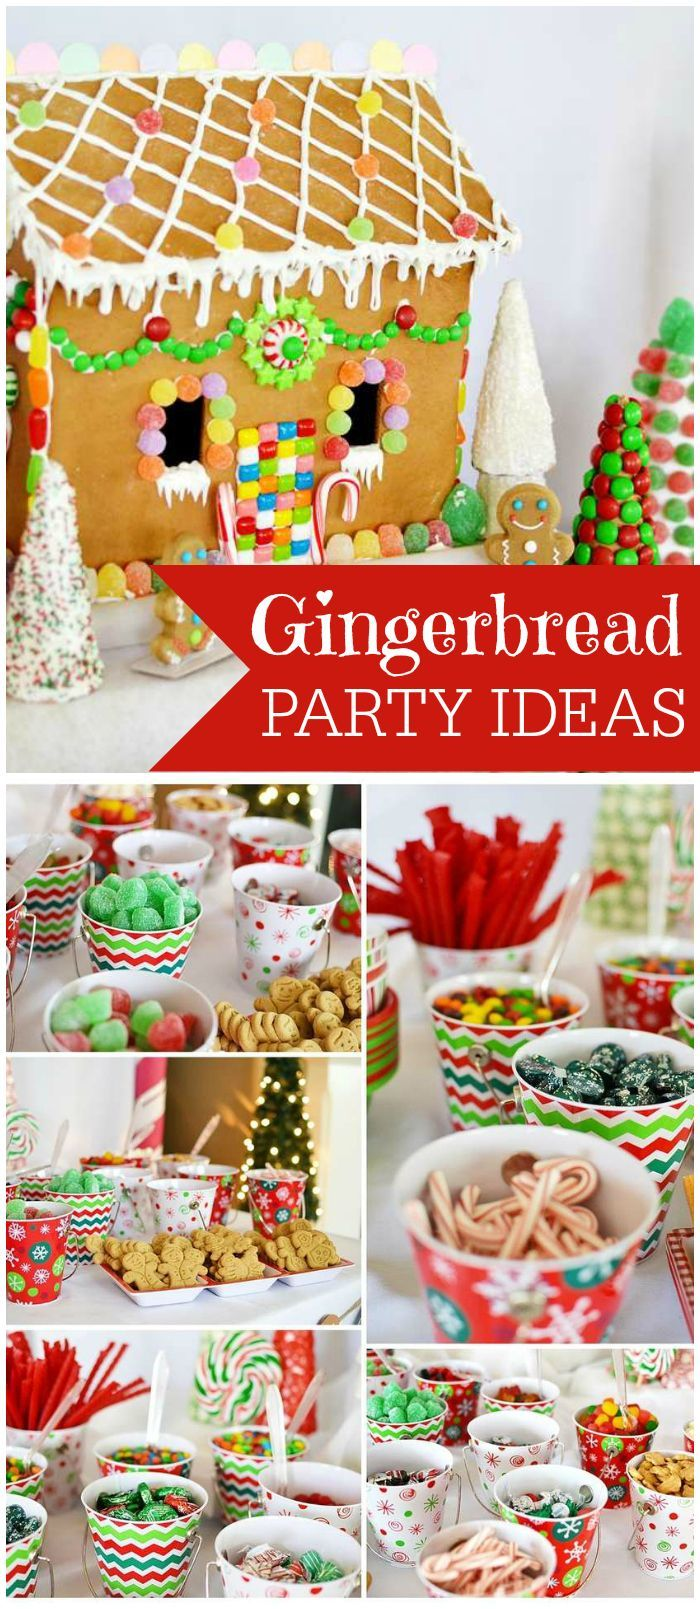 Candyland Christmas Holiday Candyland Gingerbread House Decorating Party Gingerbread House Decorations Gingerbread Party Kids Gingerbread House